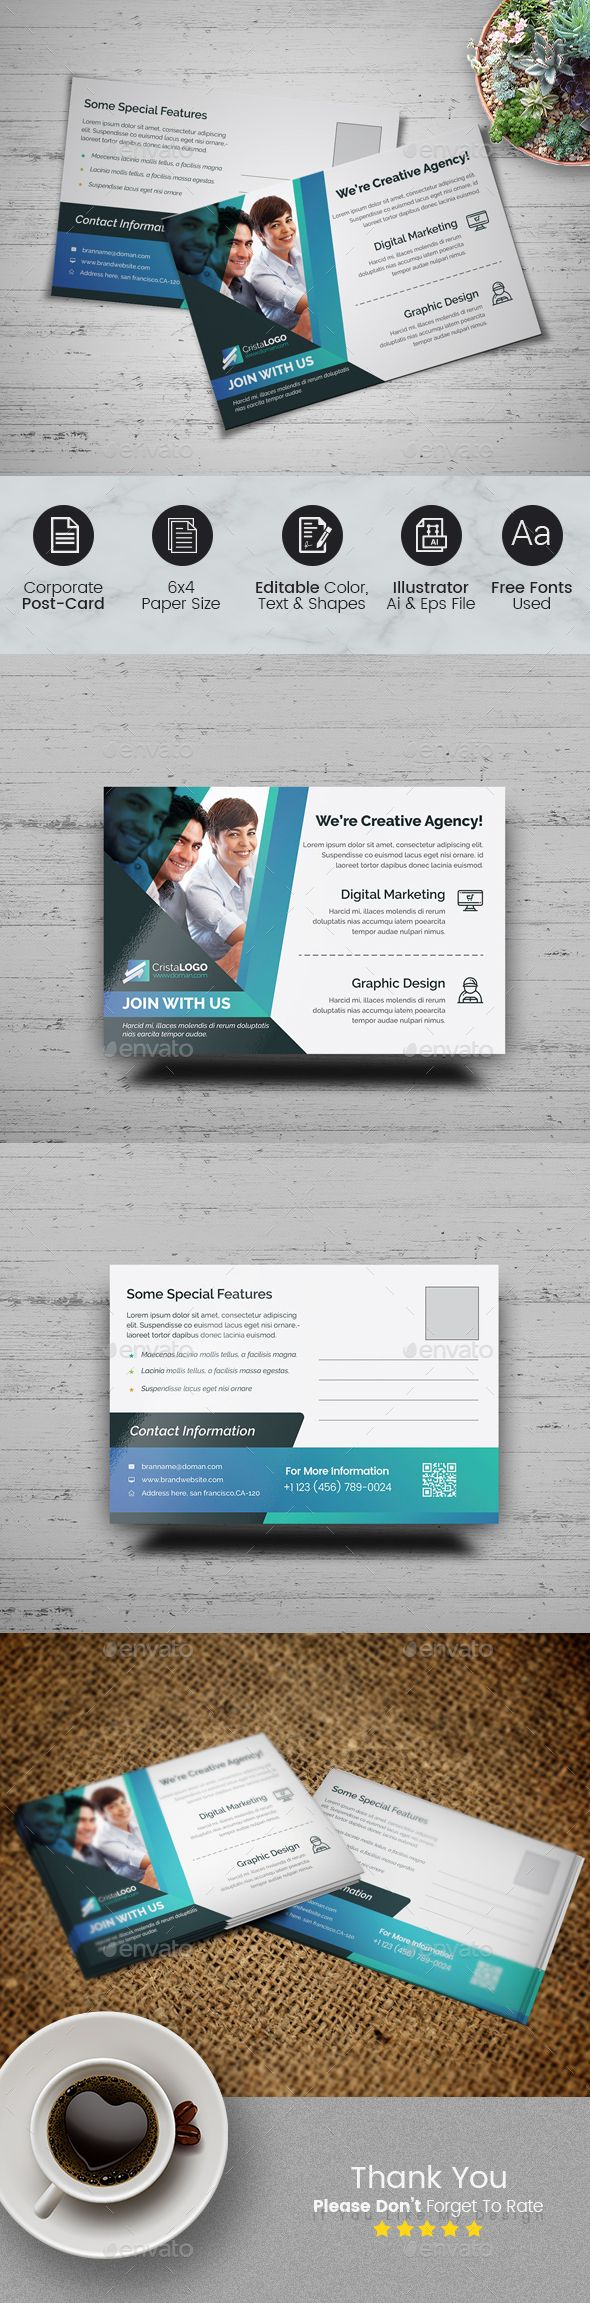 Business Postcard Template | Business postcards, Postcard template ...